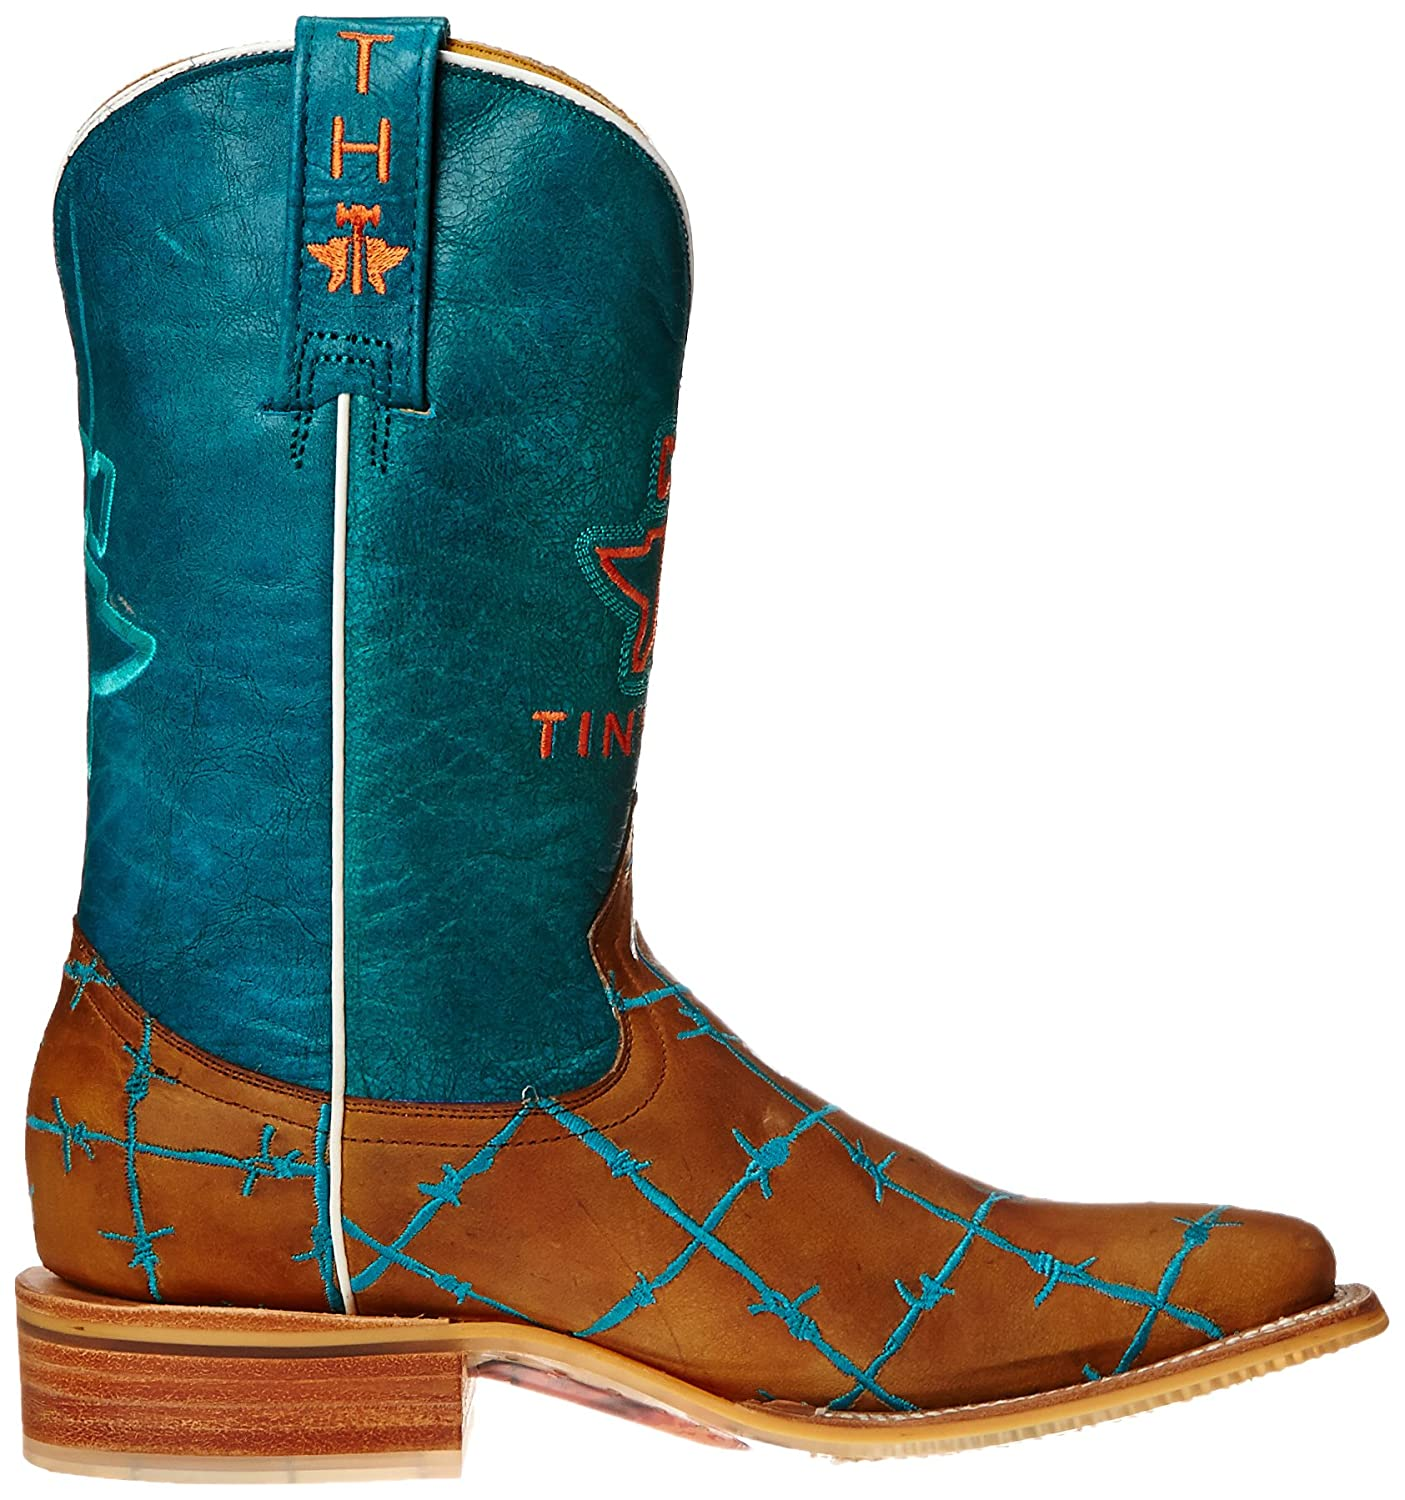 Tin Haul Western Shoes Women's Barb'd Wire Western Haul Boot B00WHUMPSQ 11 B(M) US|Tan & Turquoise 06e5c9